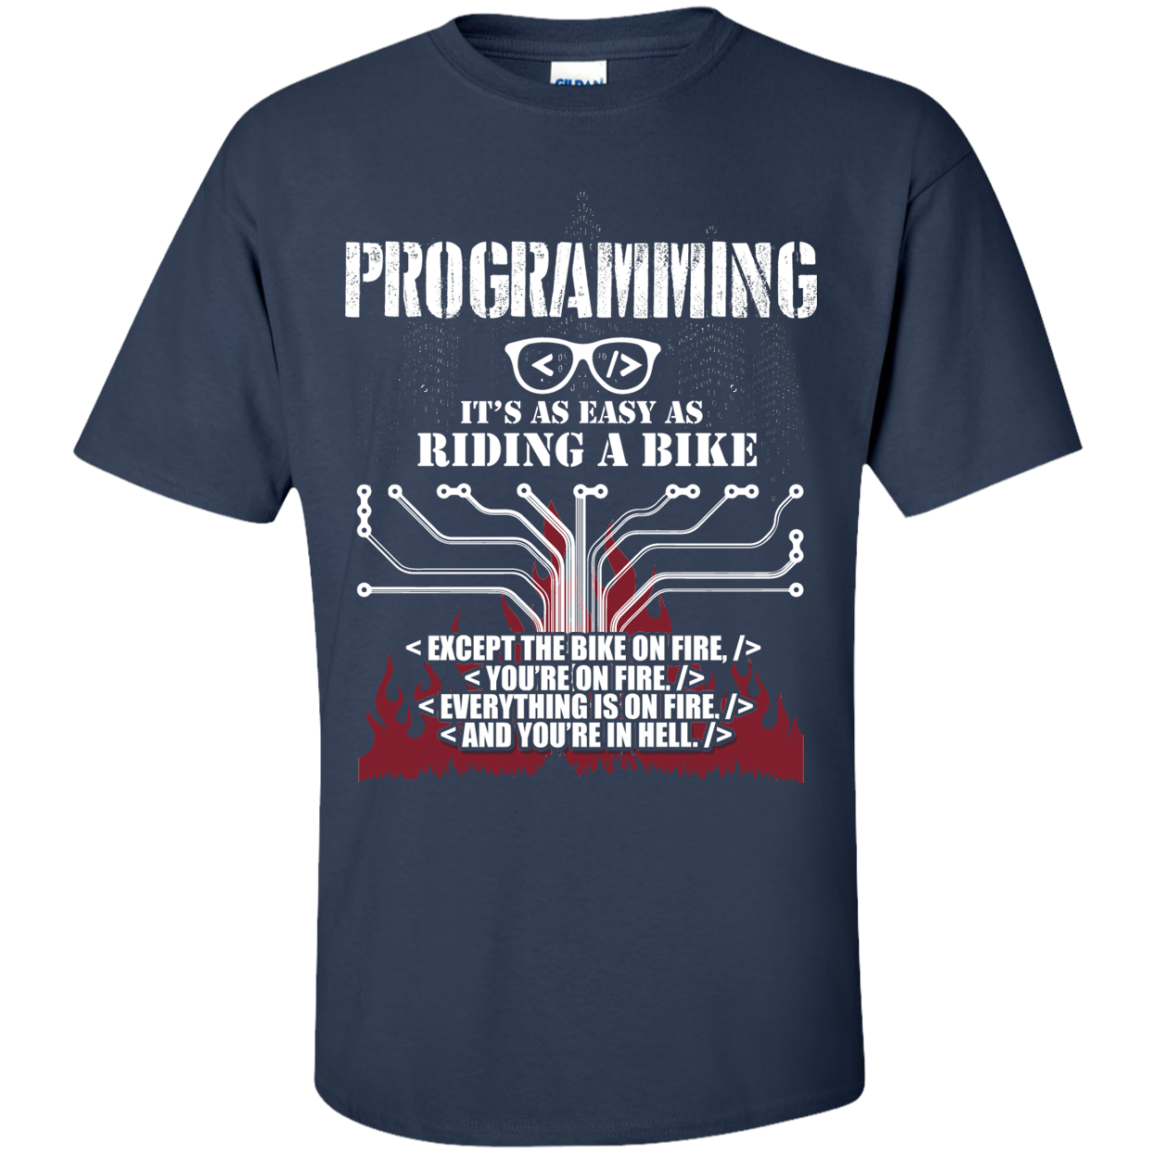 Programmer - Programming it's as easy as riding bike T-shirt